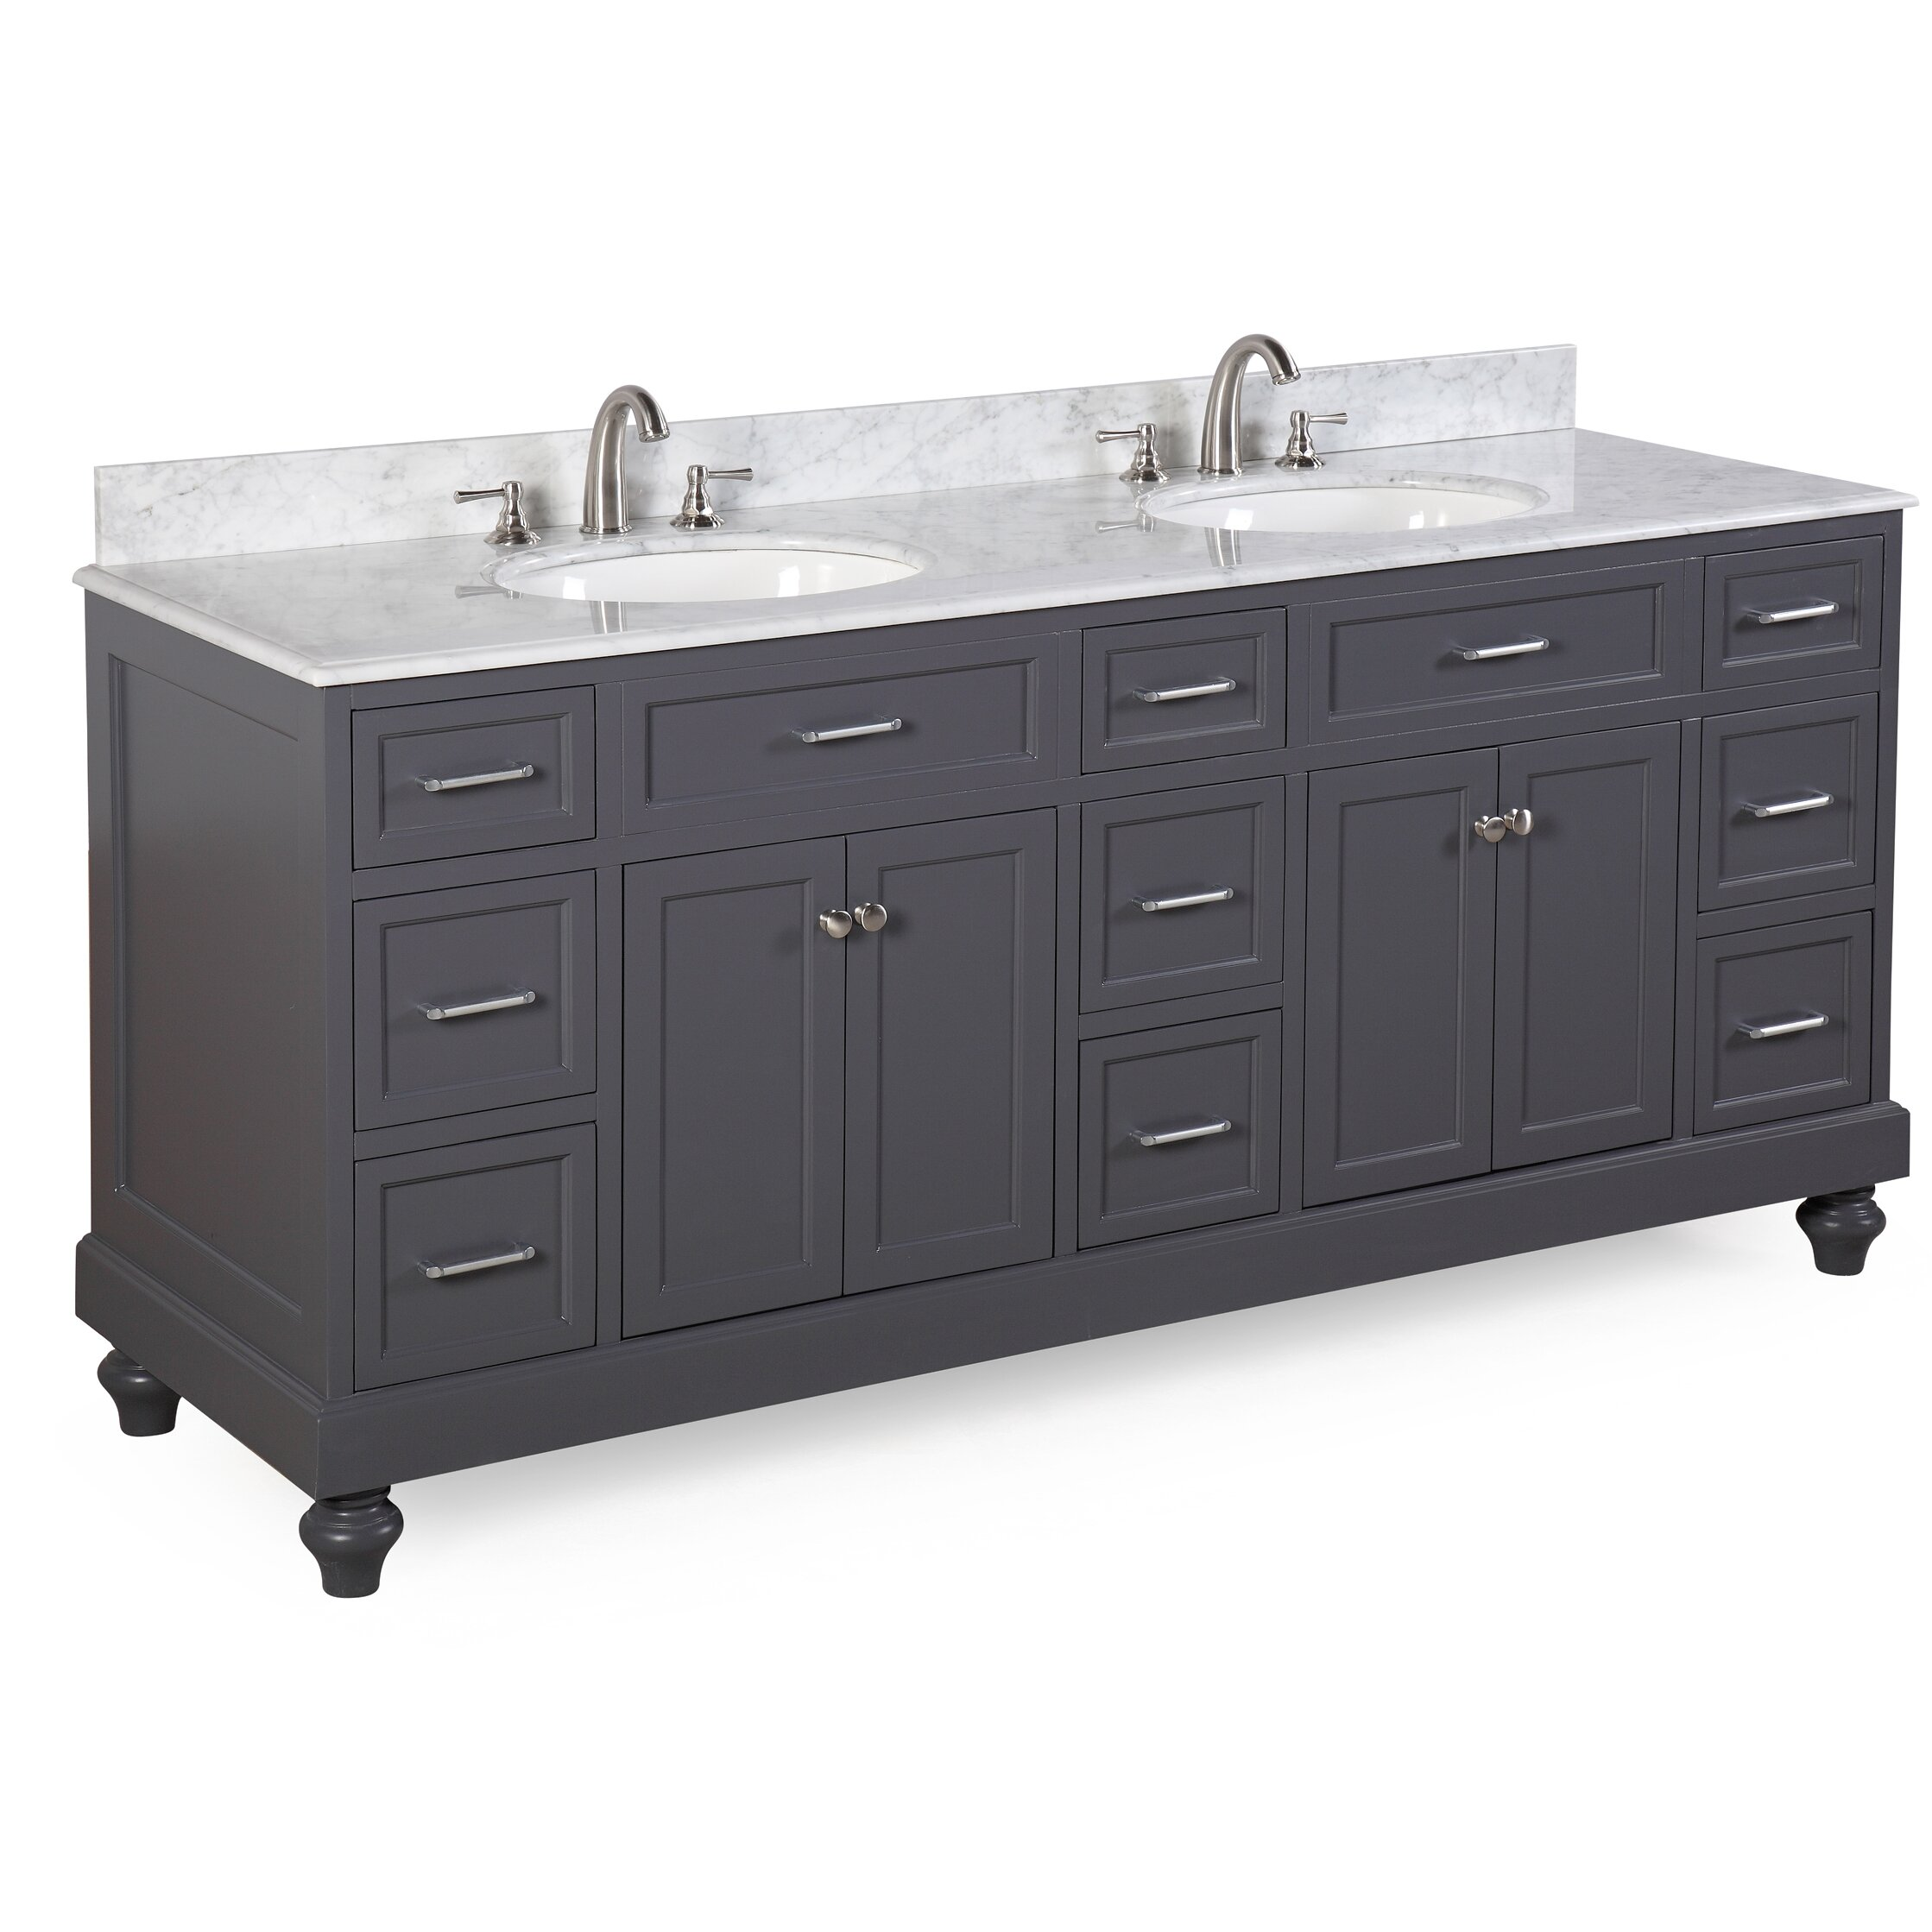 Double bathroom vanity - Kitchen Bath Collection Amelia 72 Quot Double Bathroom Vanity Set